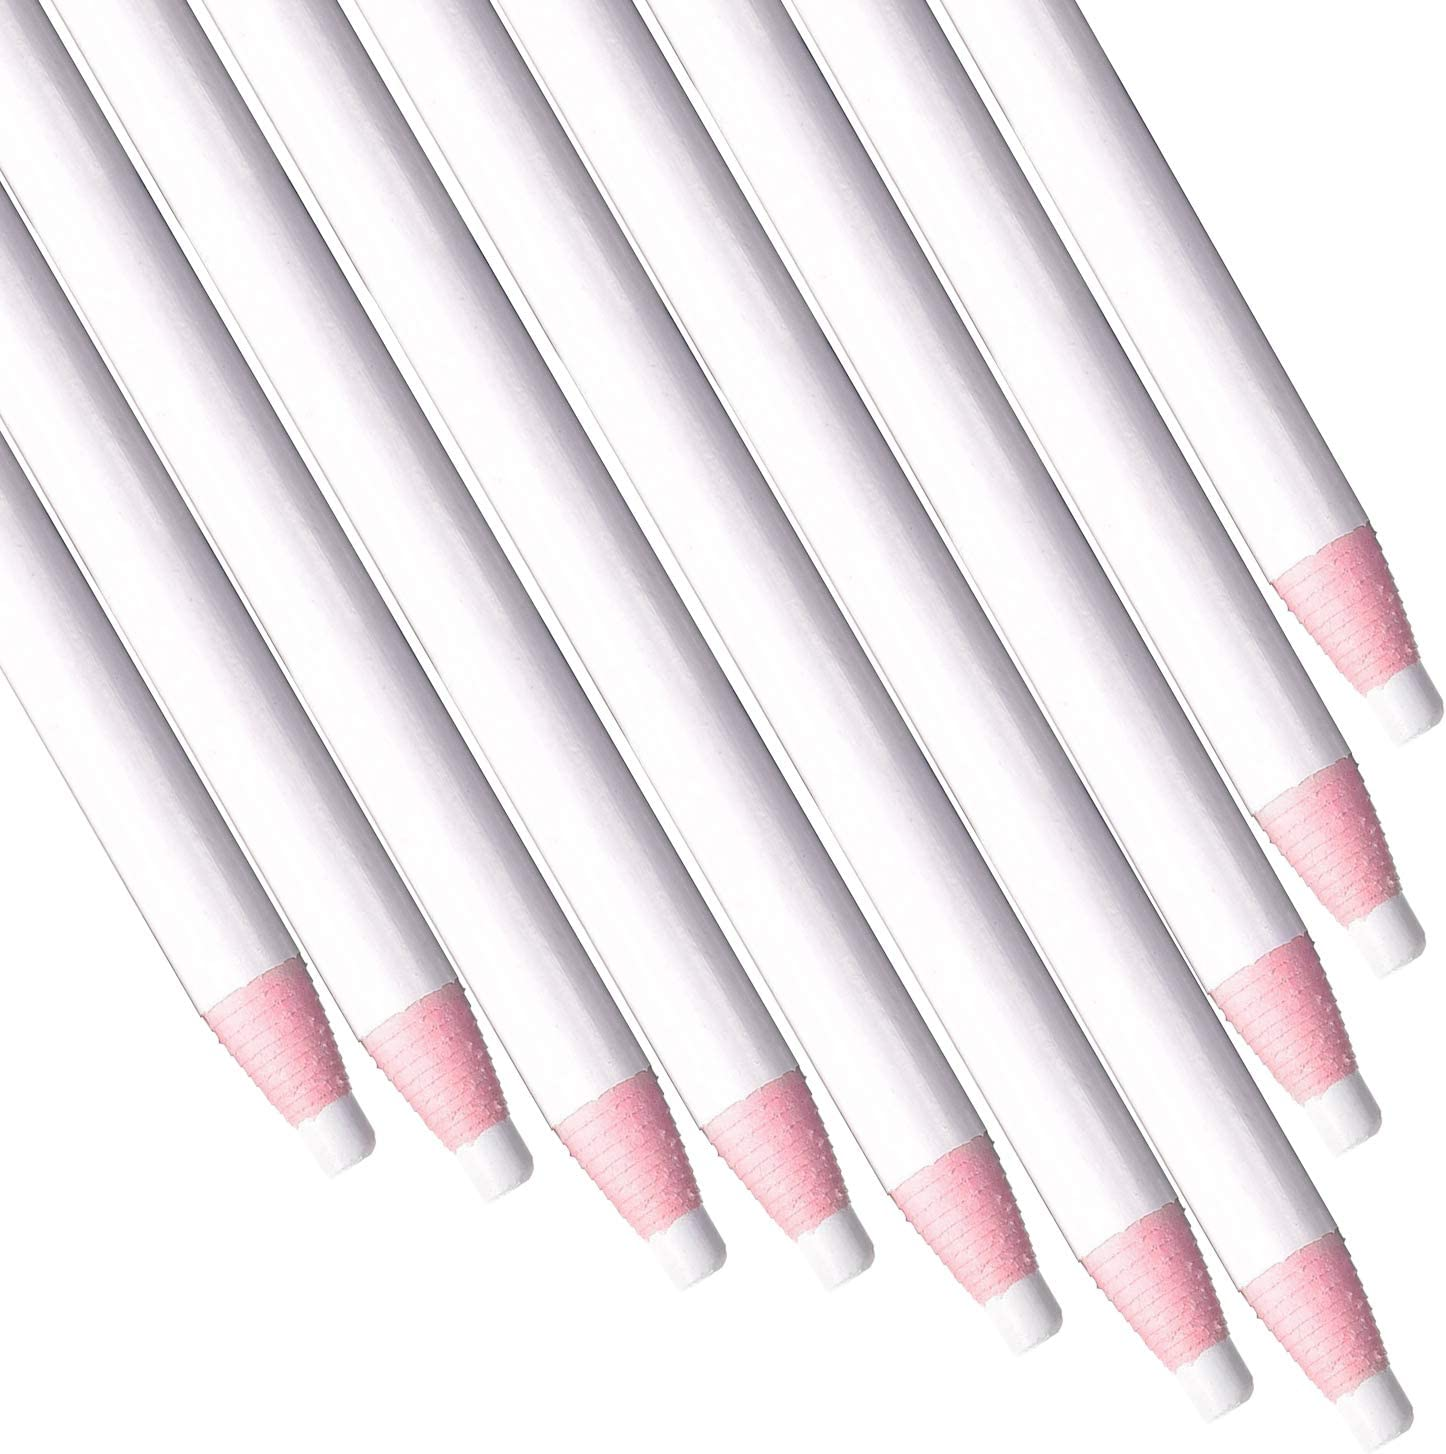 Sewing Pencils White Wax Crayon Pencil Free-Cutting Tailor's Pencil Fabric Marking Pencil for Sewing Supplies Tracing Tools (24 Pieces)